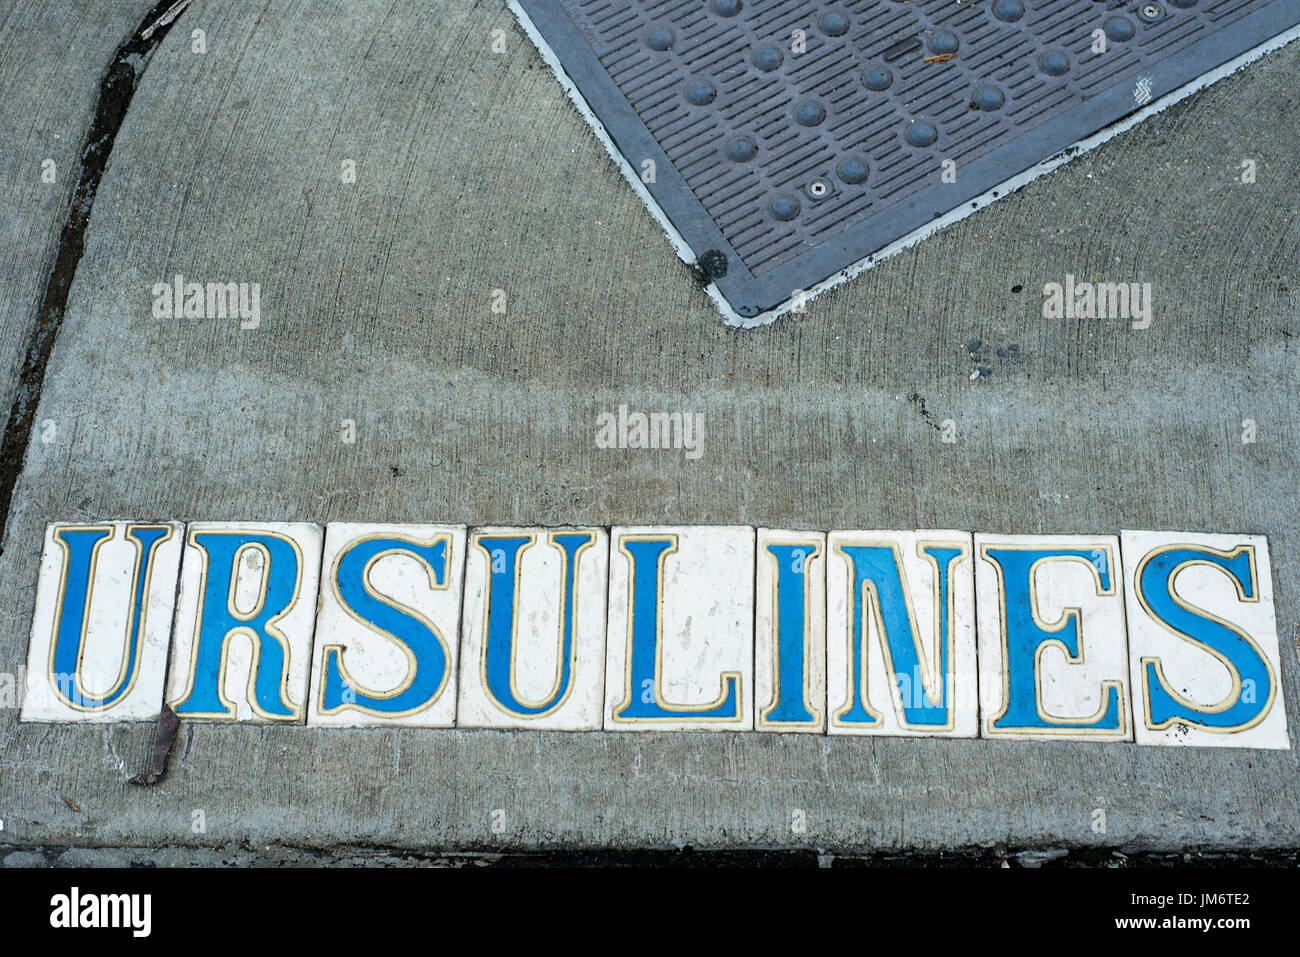 Ursulines lettered ceramic tiles spelling out the street name New Orleans - Stock Image